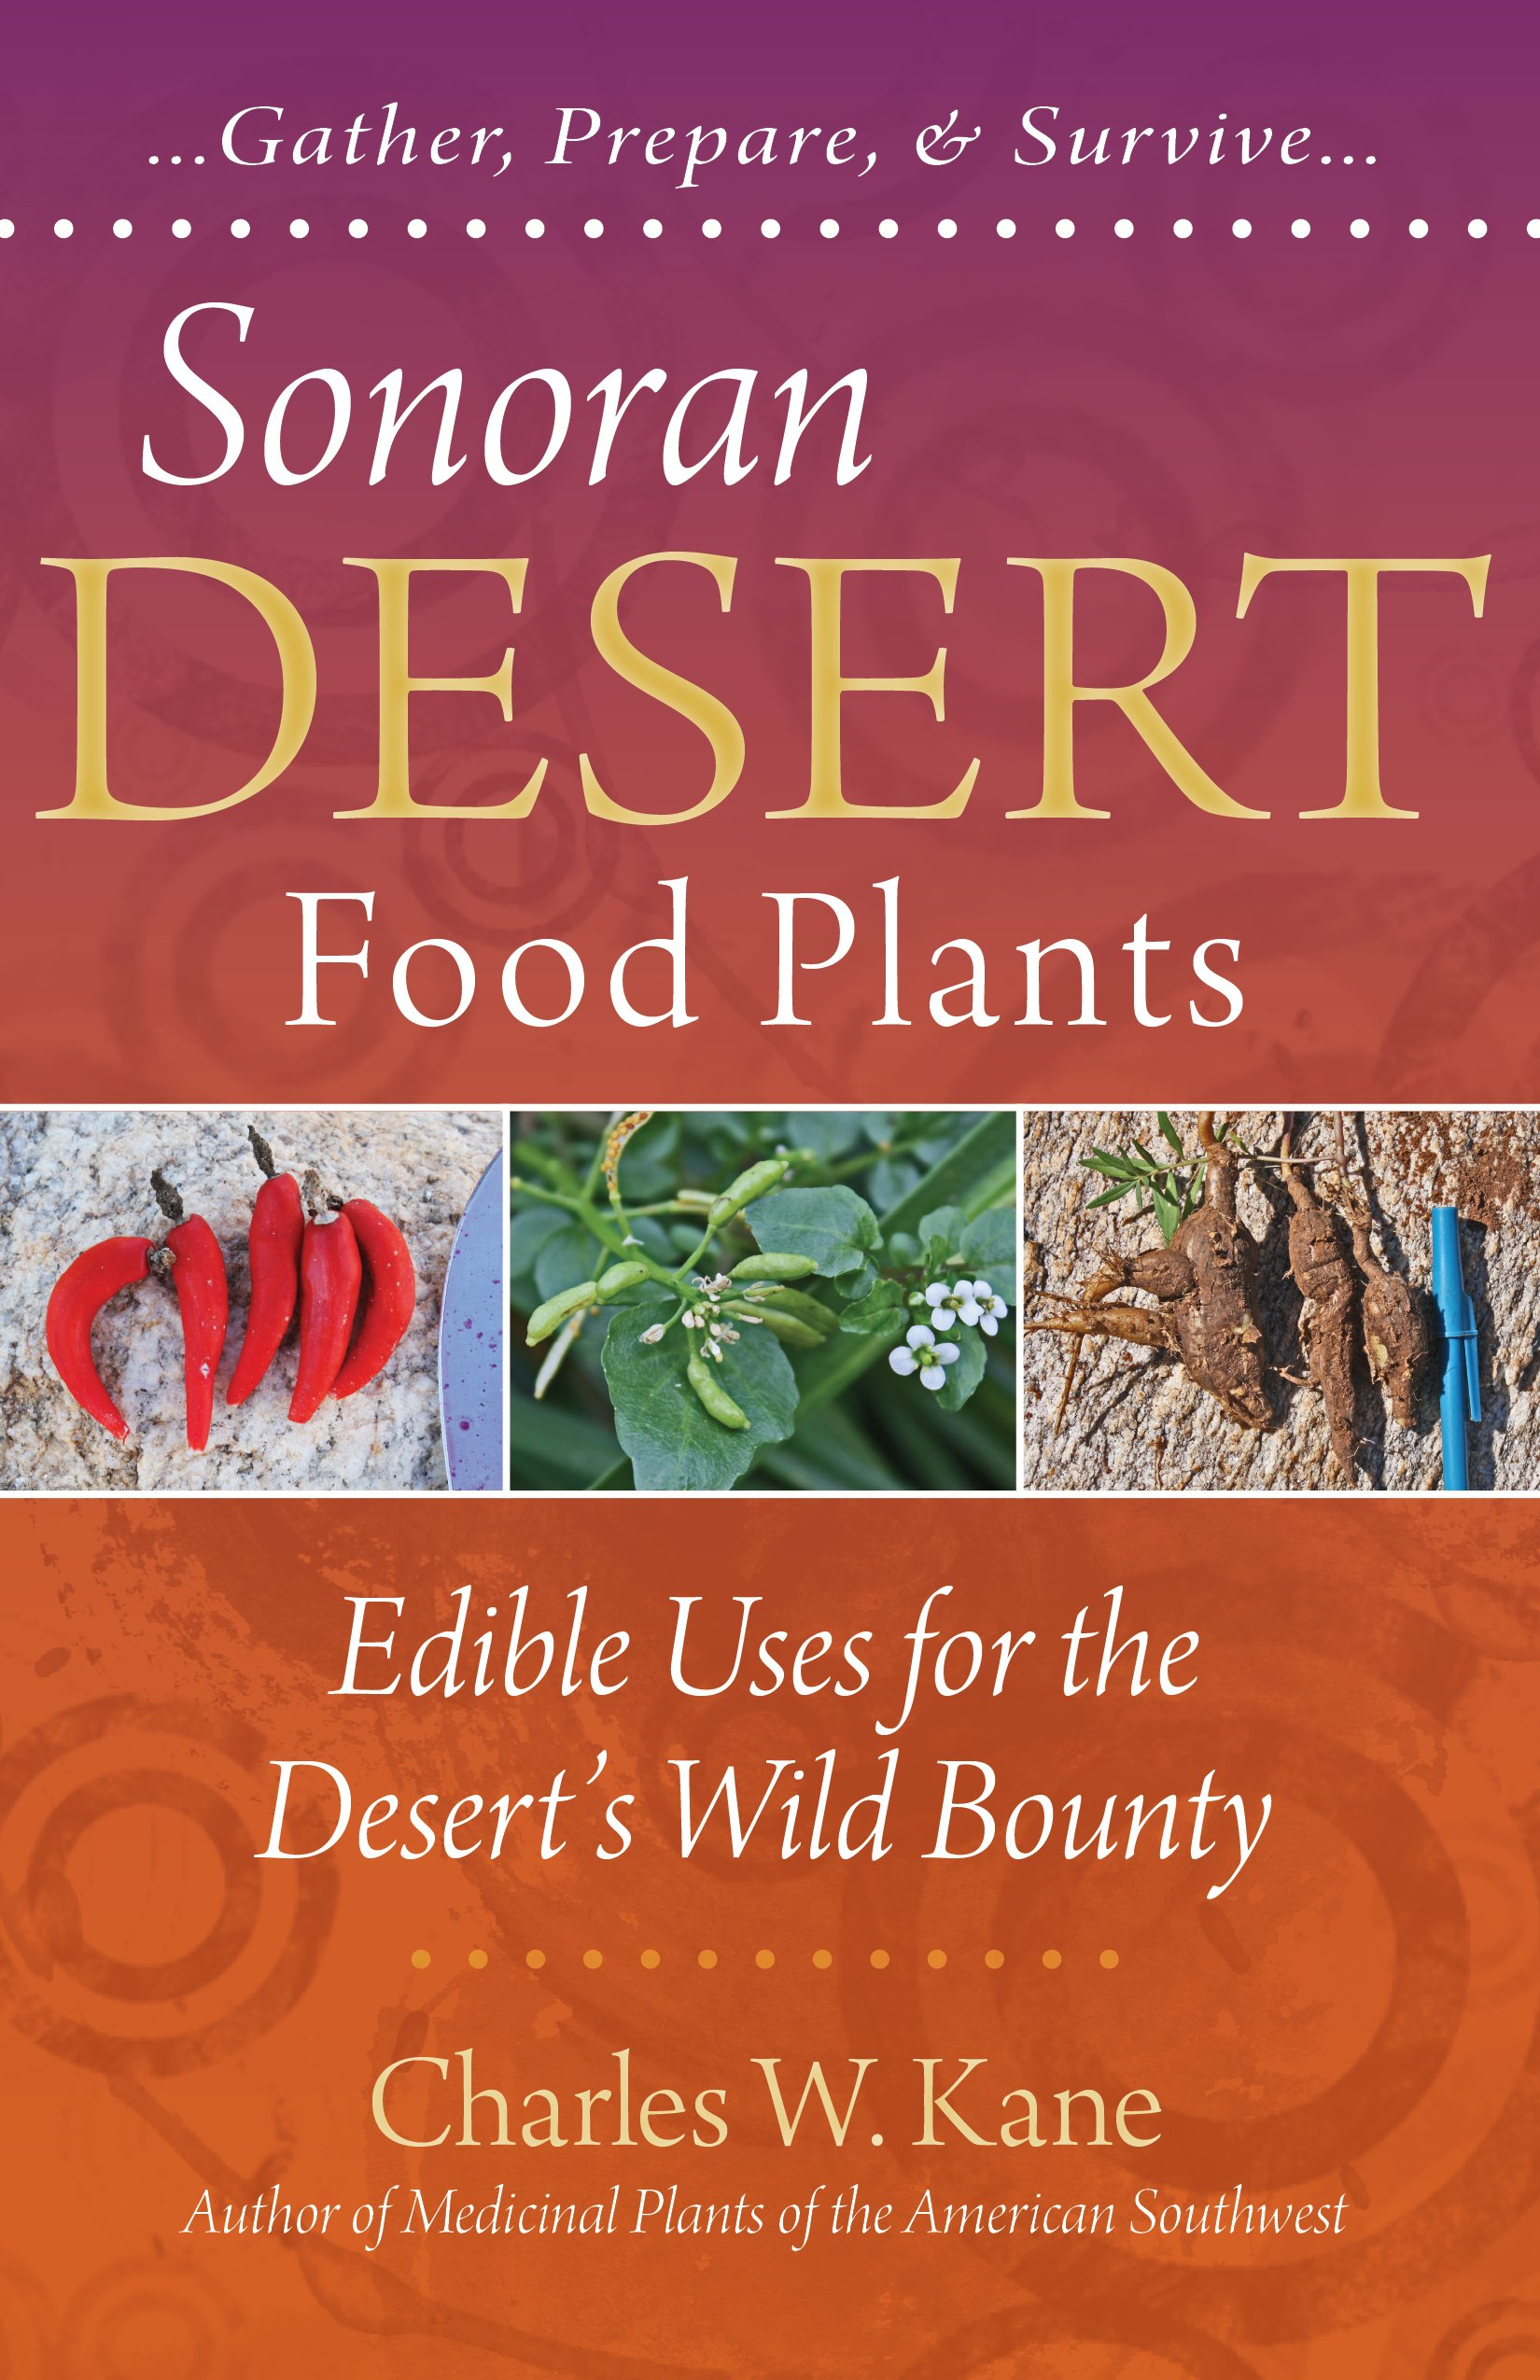 Sonoran Desert Food Plants